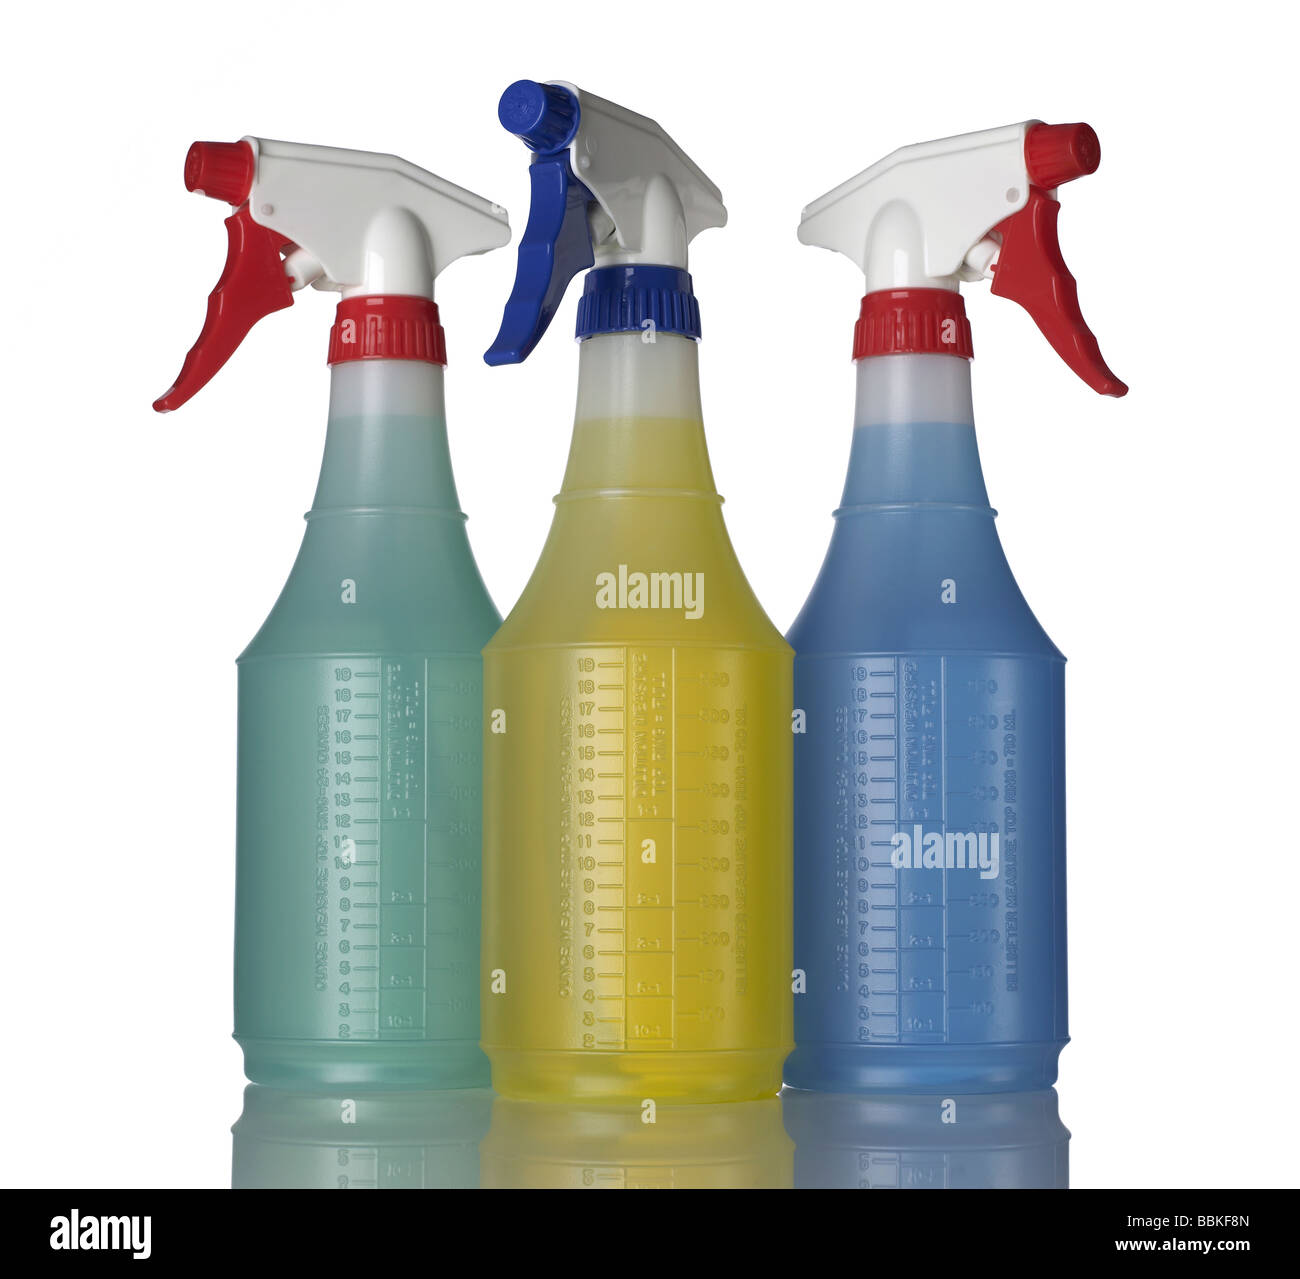 Three 3 spray bottle - Stock Image